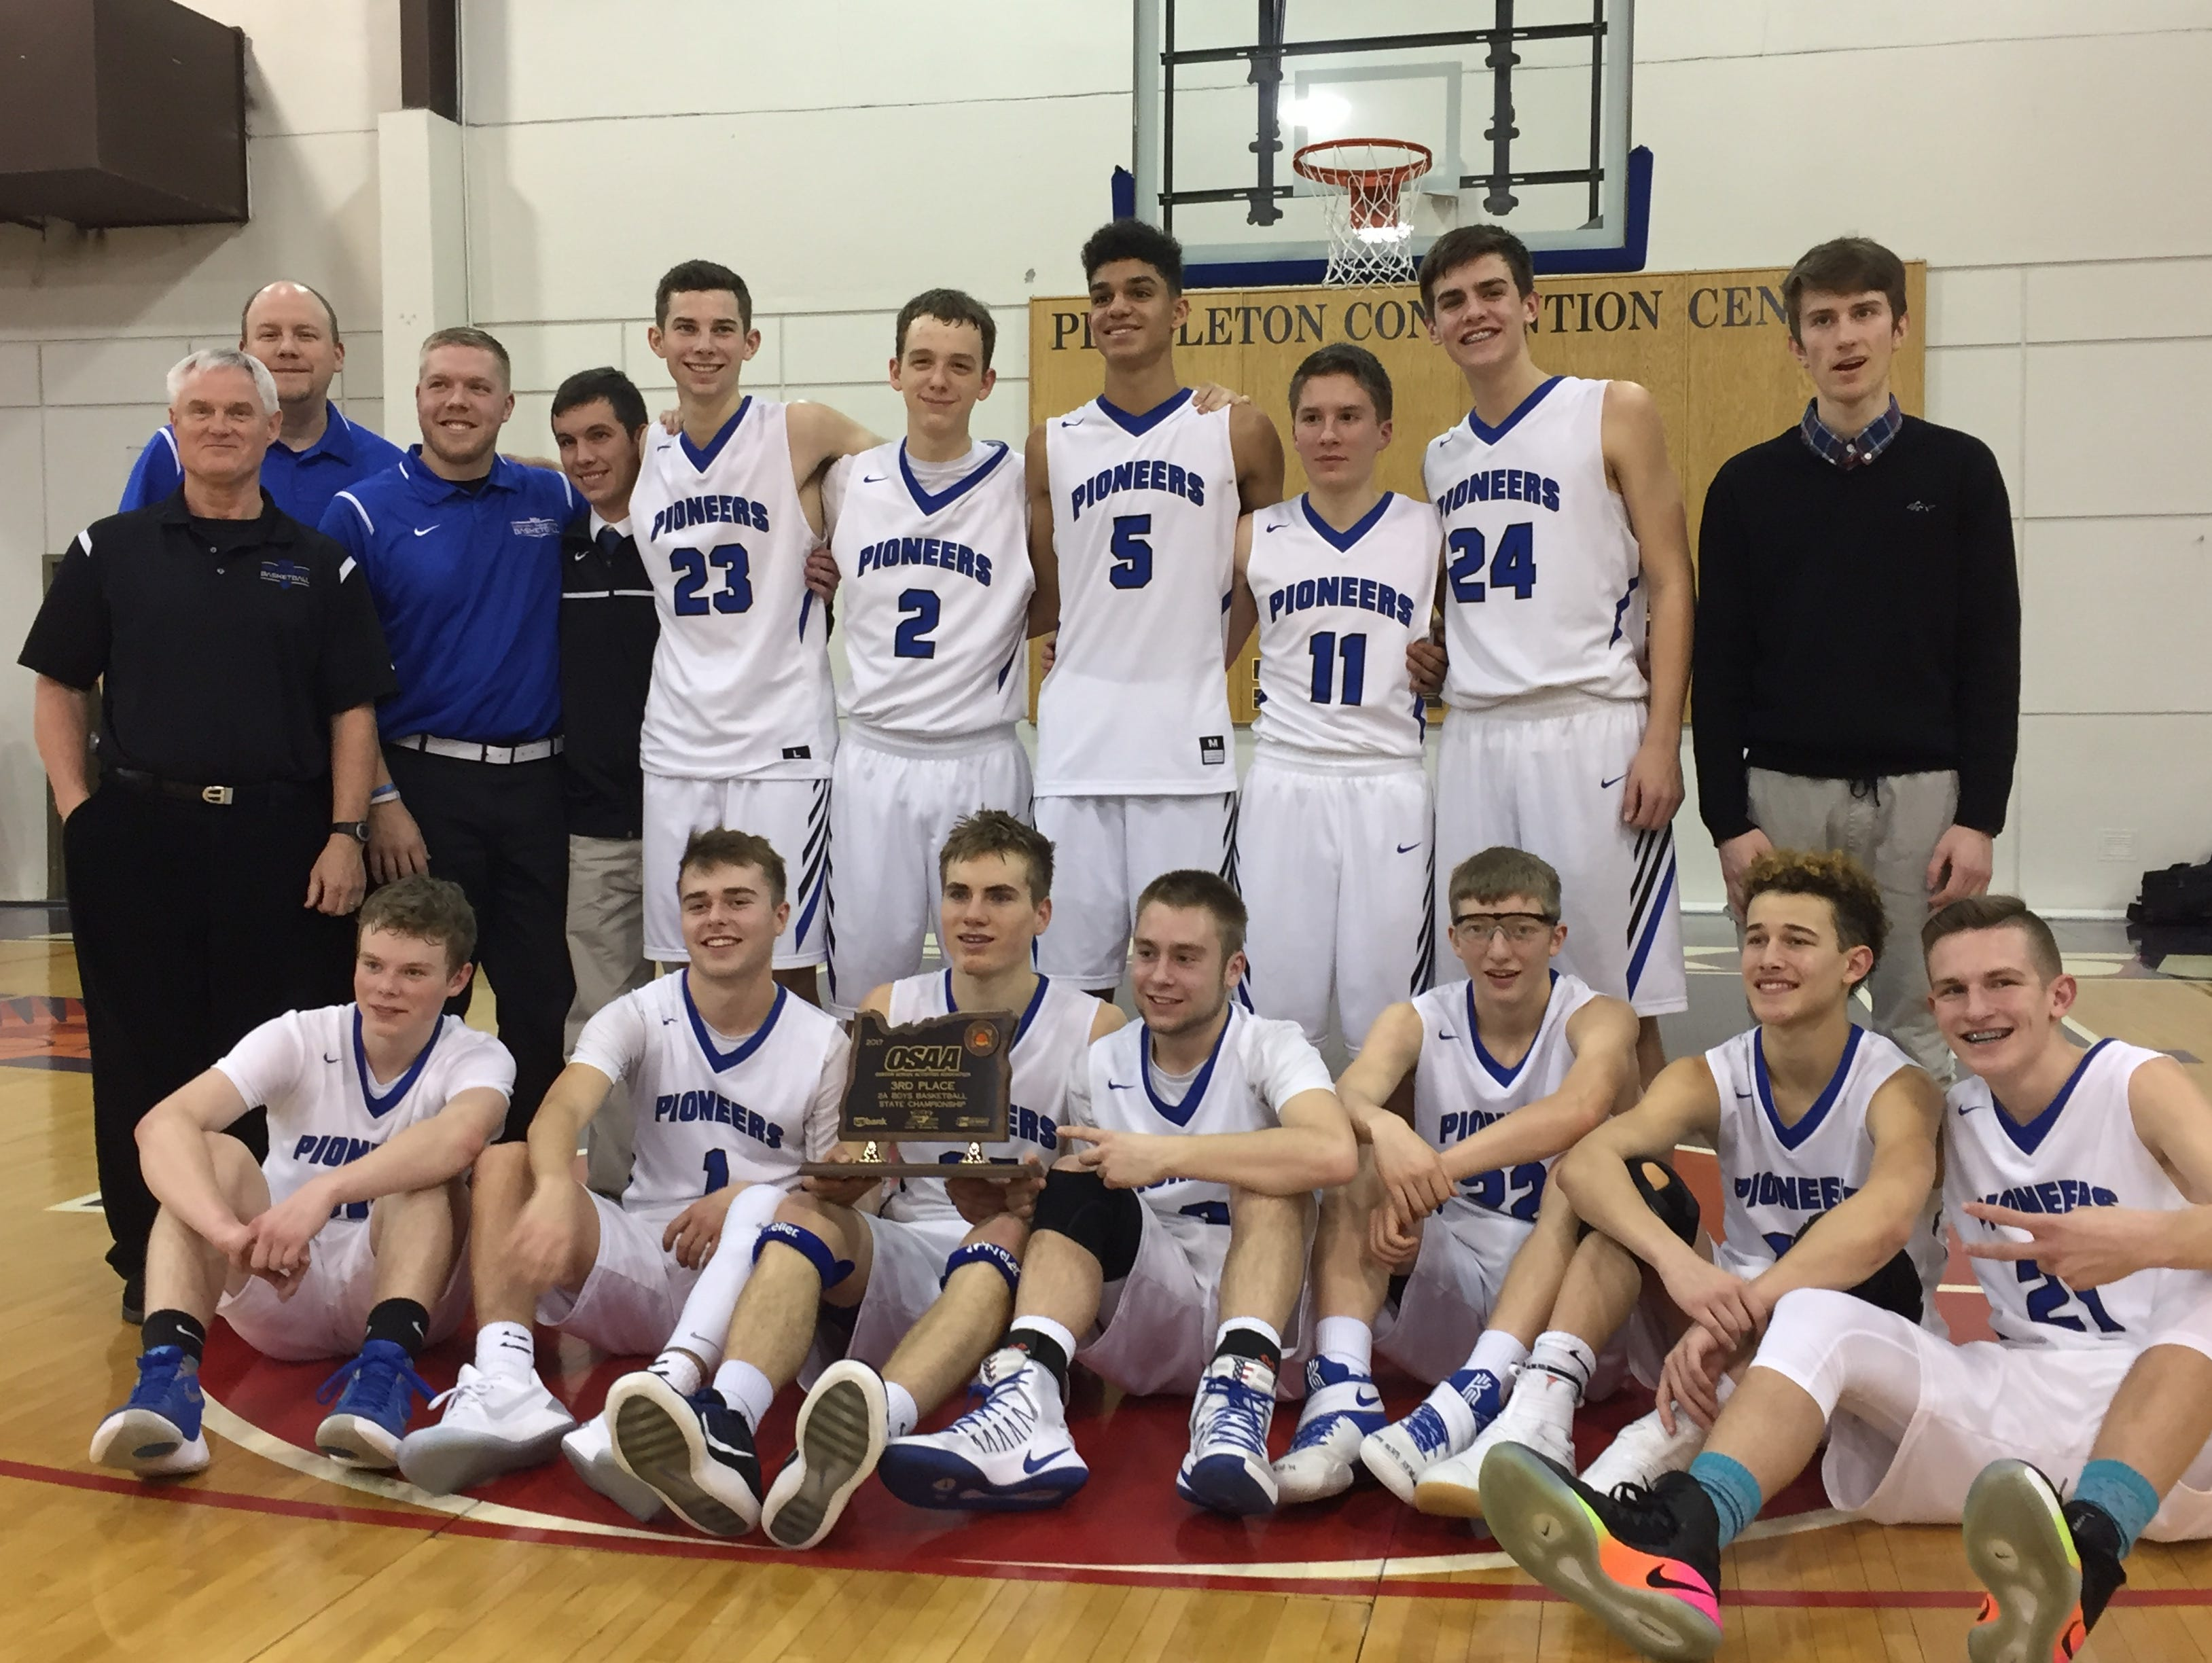 The Western Mennonite boys high school basketball team placed third in the Class 2A boys state tournament.